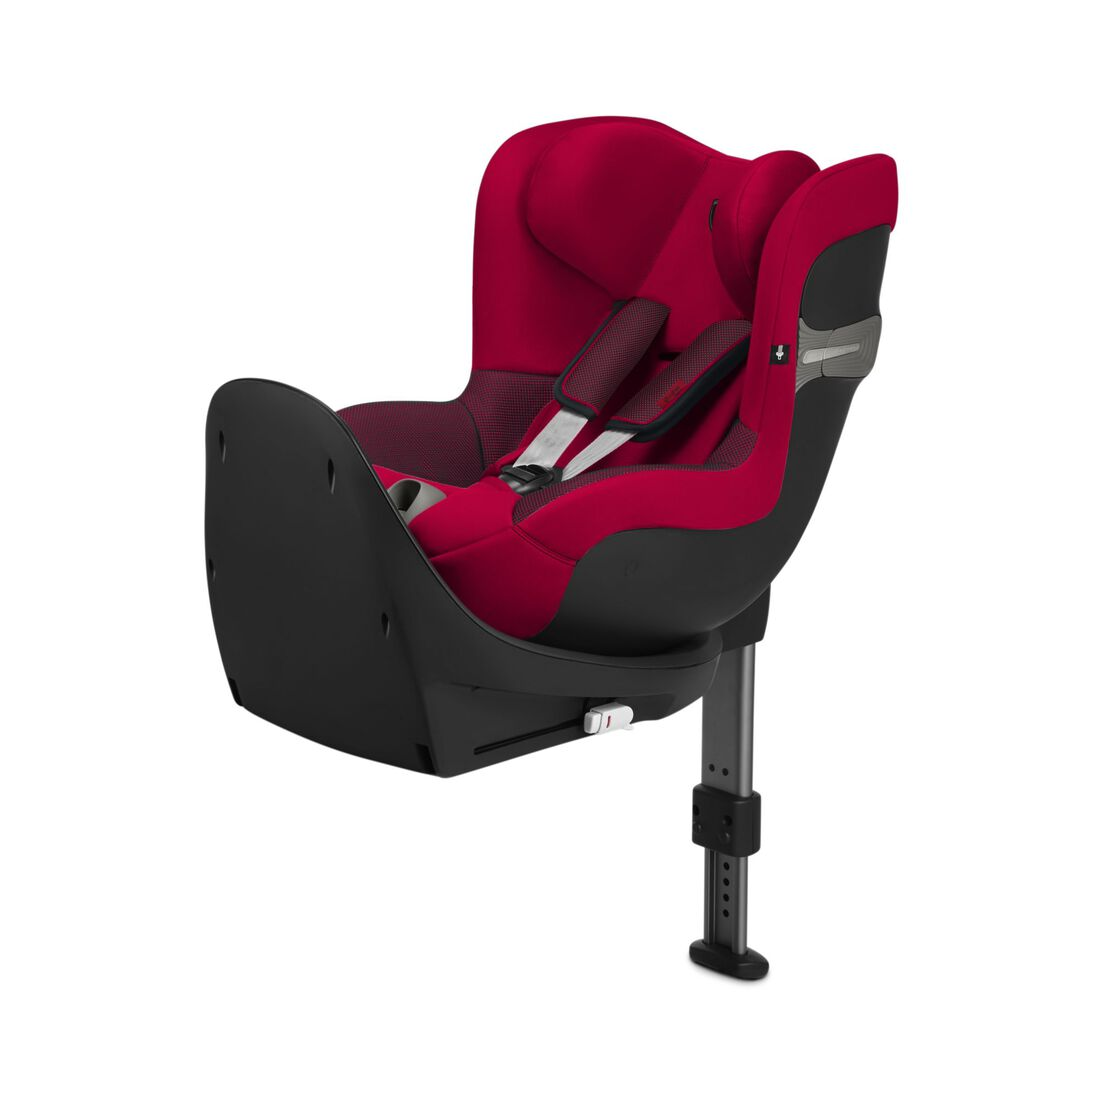 CYBEX Sirona S i-Size - Ferrari Racing Red in Ferrari Racing Red large image number 1